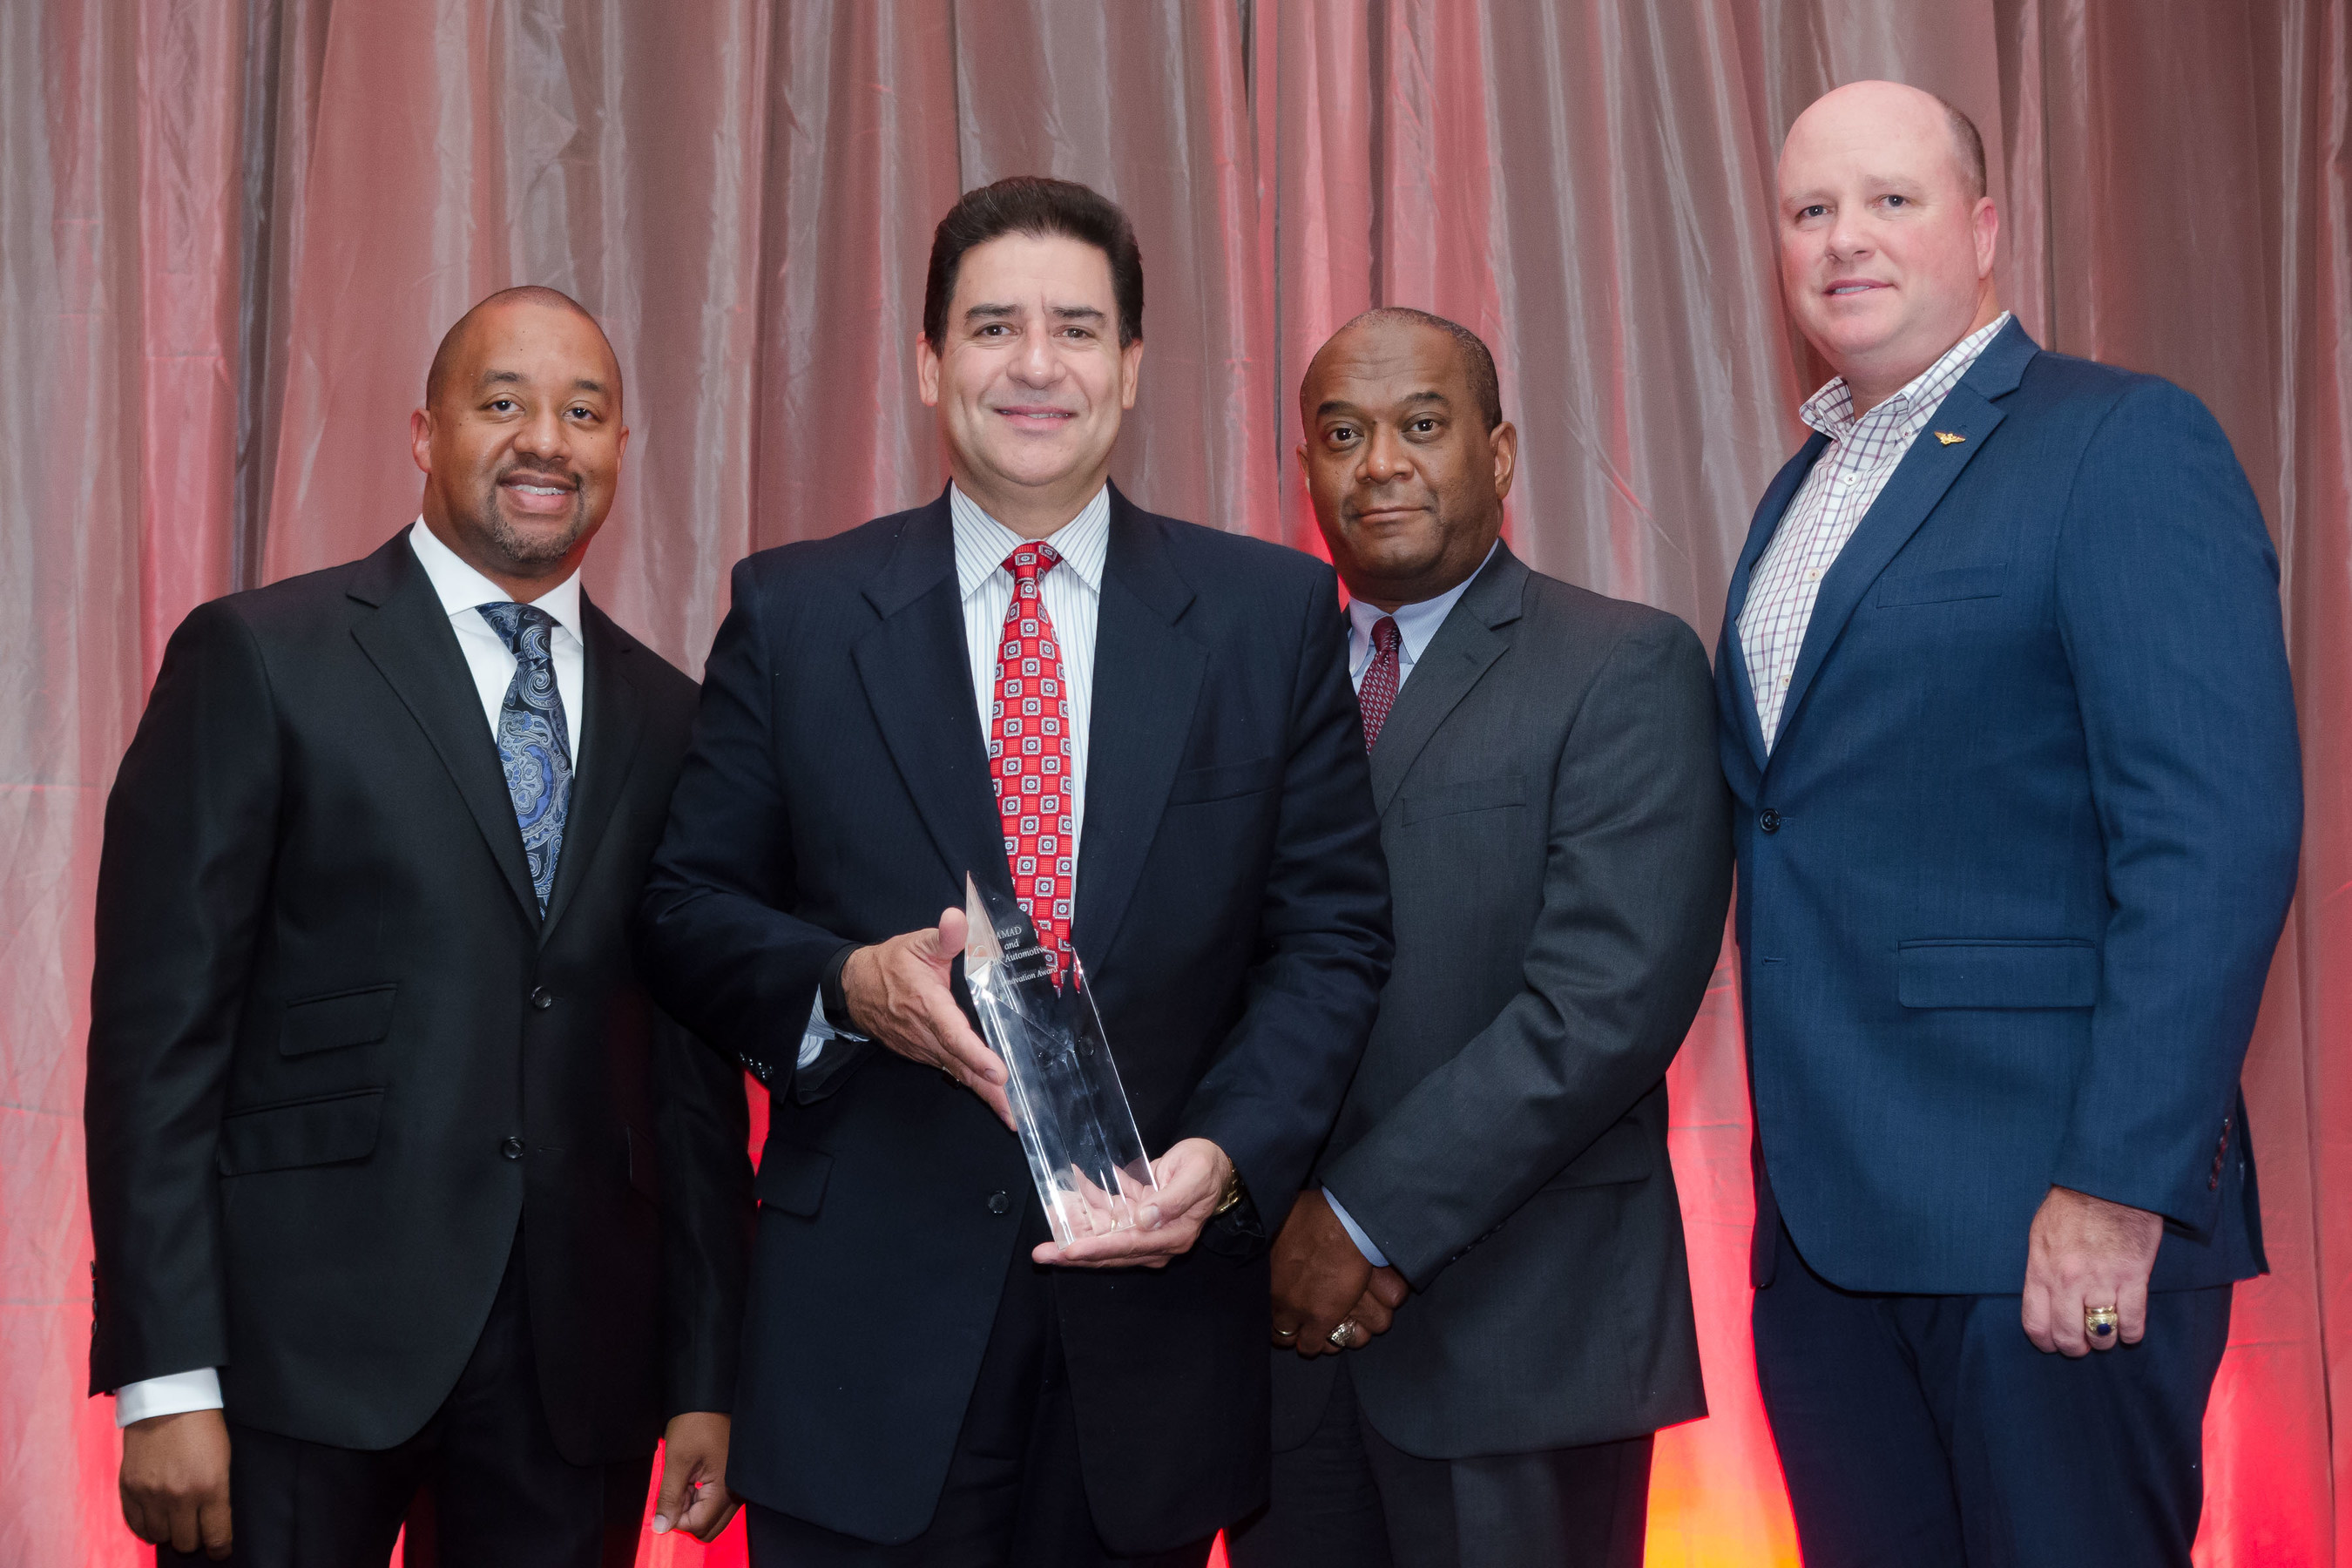 CARLOS LIRIANO OF LOST PINES TOYOTA RECEIVES SECOND ANNUAL INNOVATION AWARD FROM NAMAD AND COX AUTOMOTIVE. Pictured L to R: Damon Lester, President, NAMAD; Carlos Liriano, Dealer Principal, Lost Pines Toyota; Rock Anderson, Chief People Officer, Cox Automotive; Kevin Filan, VP, Customer & Industry Marketing, Cox Automotive